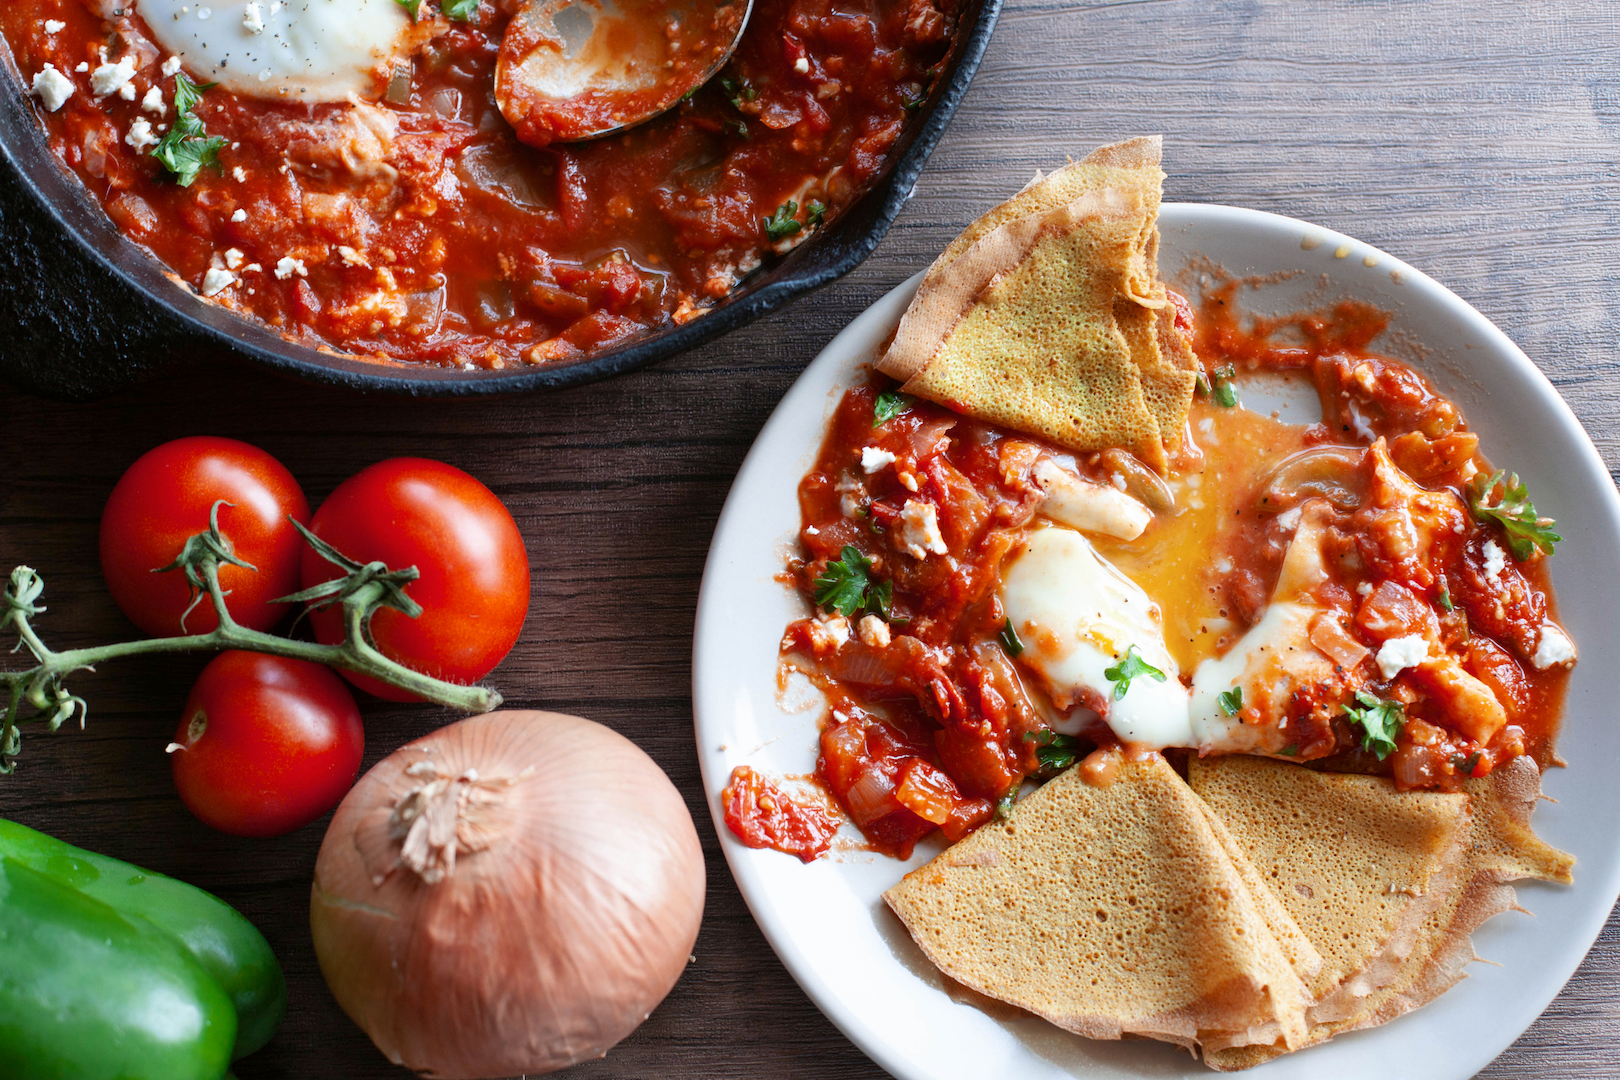 This is a photo of a shakshouka recipe that shows a broken yolk on a plate with the tomato sauce and a low carb wrap.